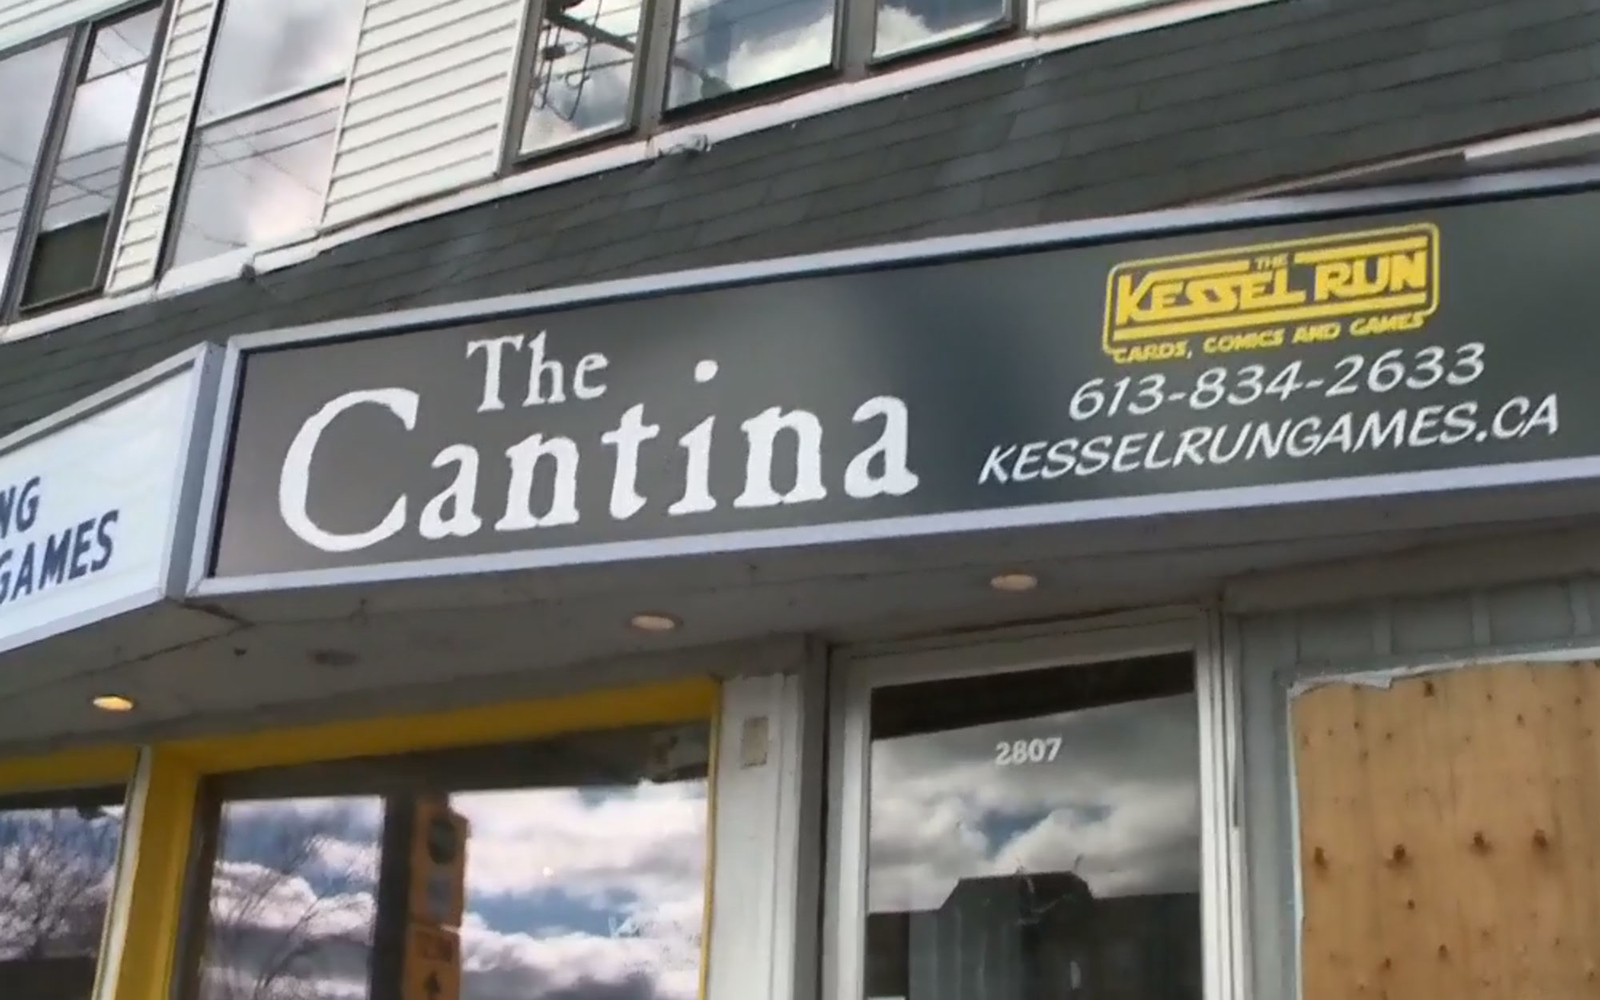 The Cantina Star Wars bar in Ottawa